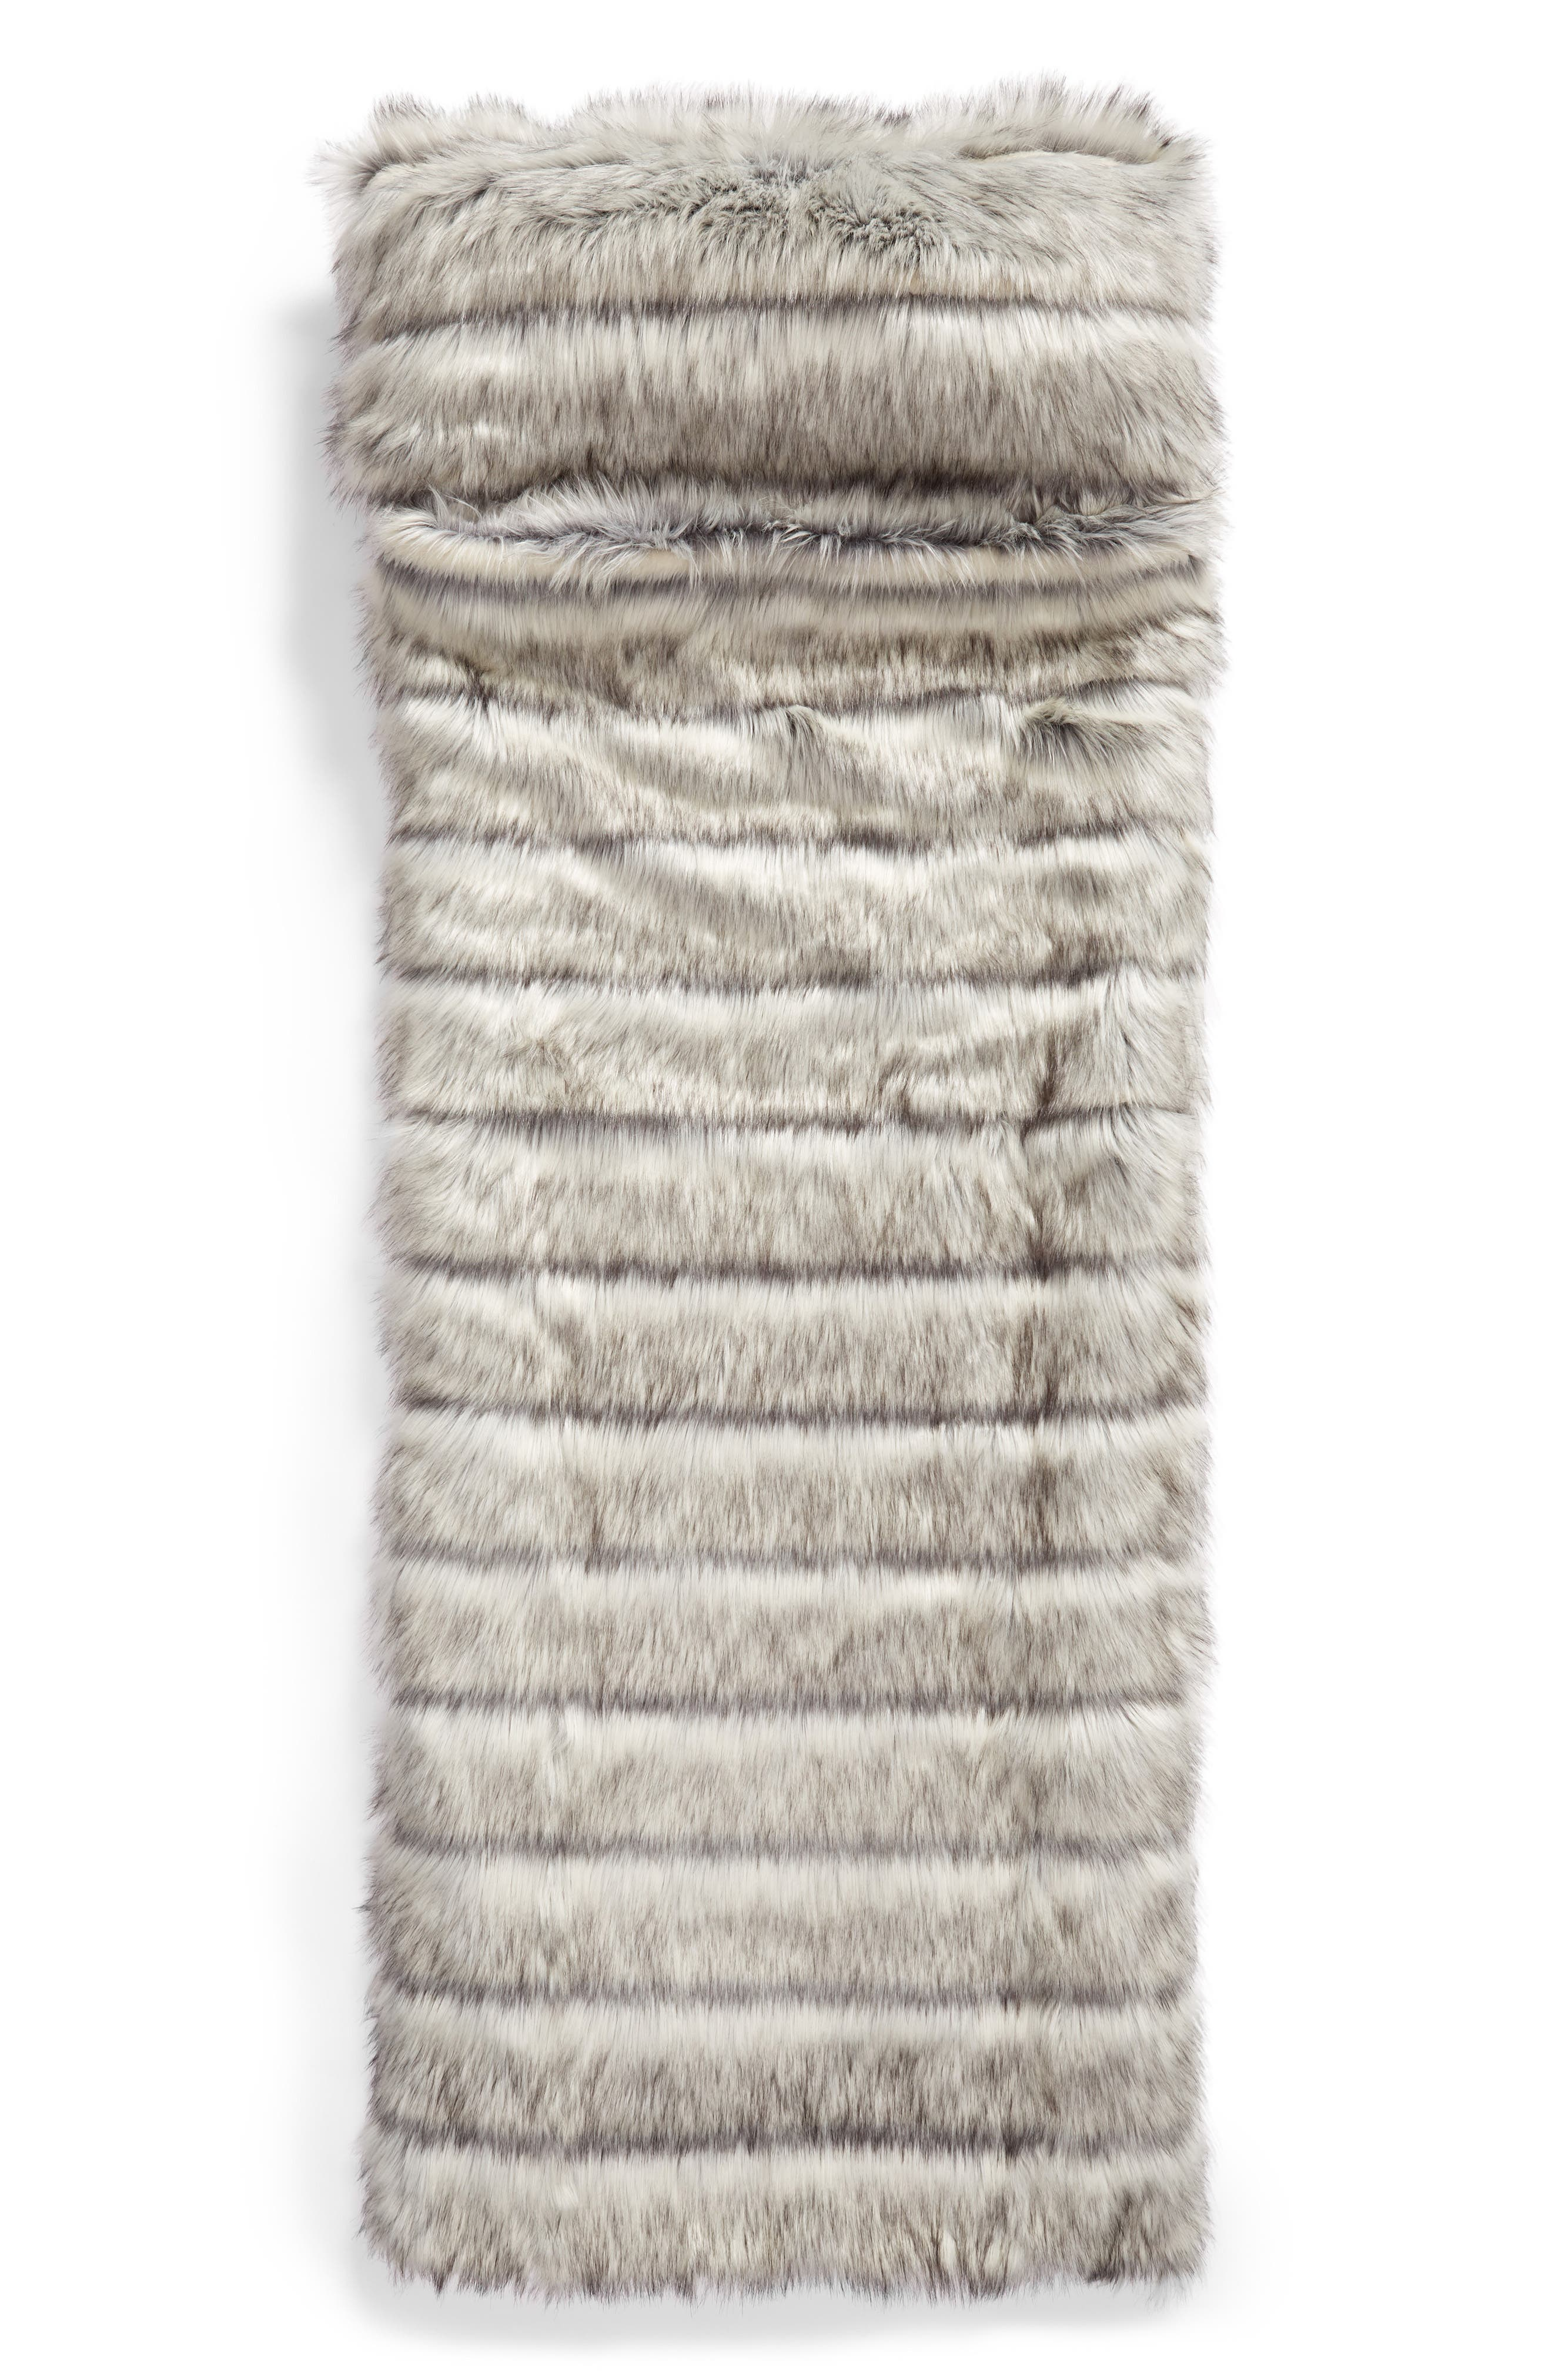 NORDSTROM AT HOME, Luxe Faux Fur Slumber Bag, Main thumbnail 1, color, GREY FROST MULTI